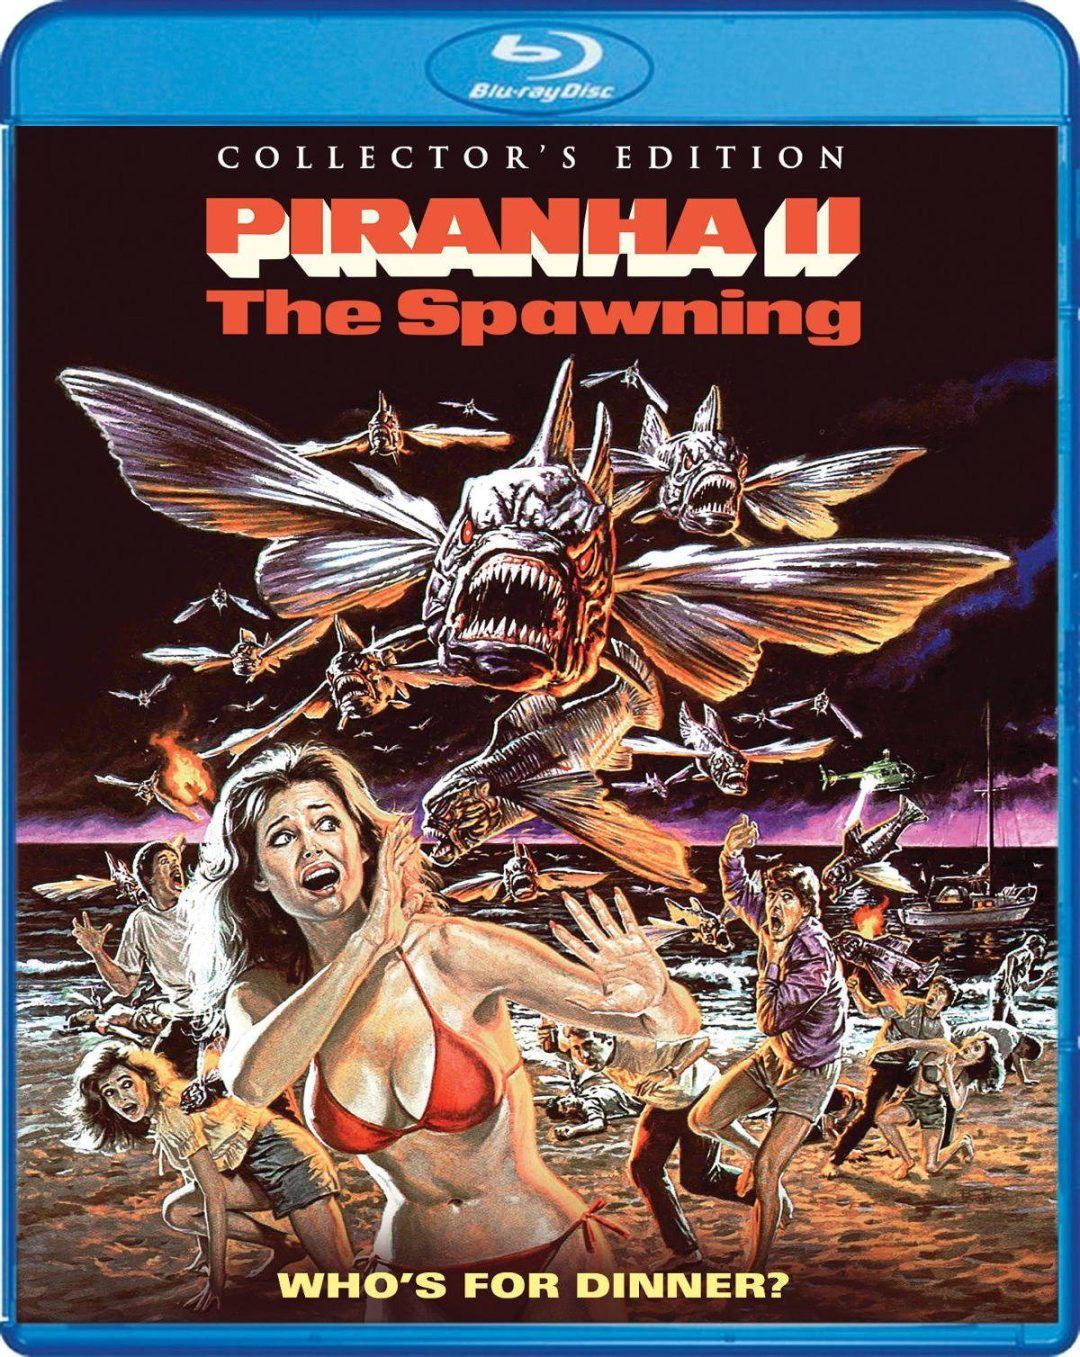 Hungry For 'Piranha II: The Spawning?'